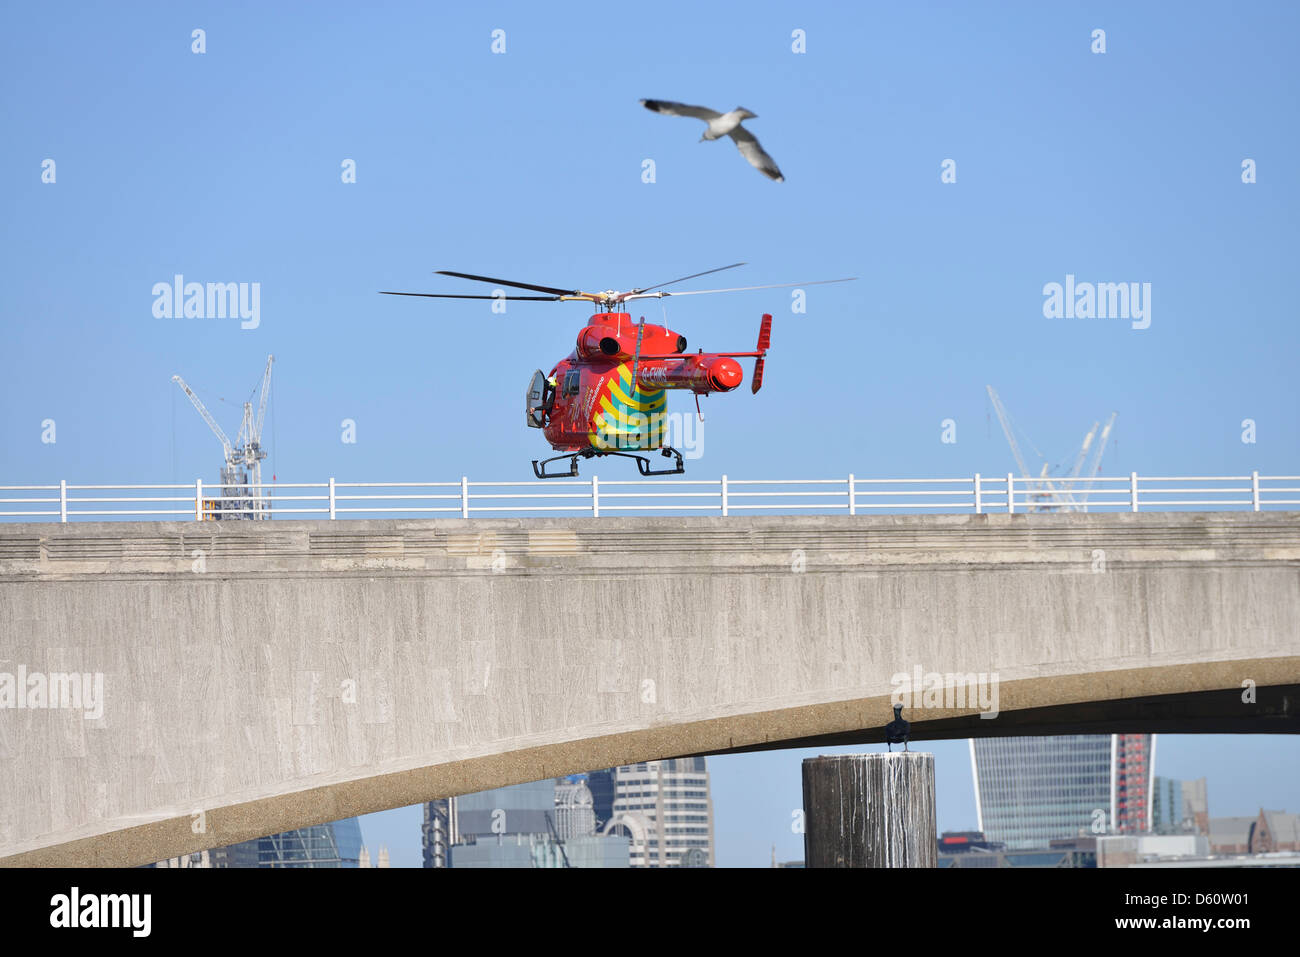 London, England - April 02, 2013: A London Air Ambulance helicopter lands at an emergency scene on Waterloo Bridge. - Stock Image